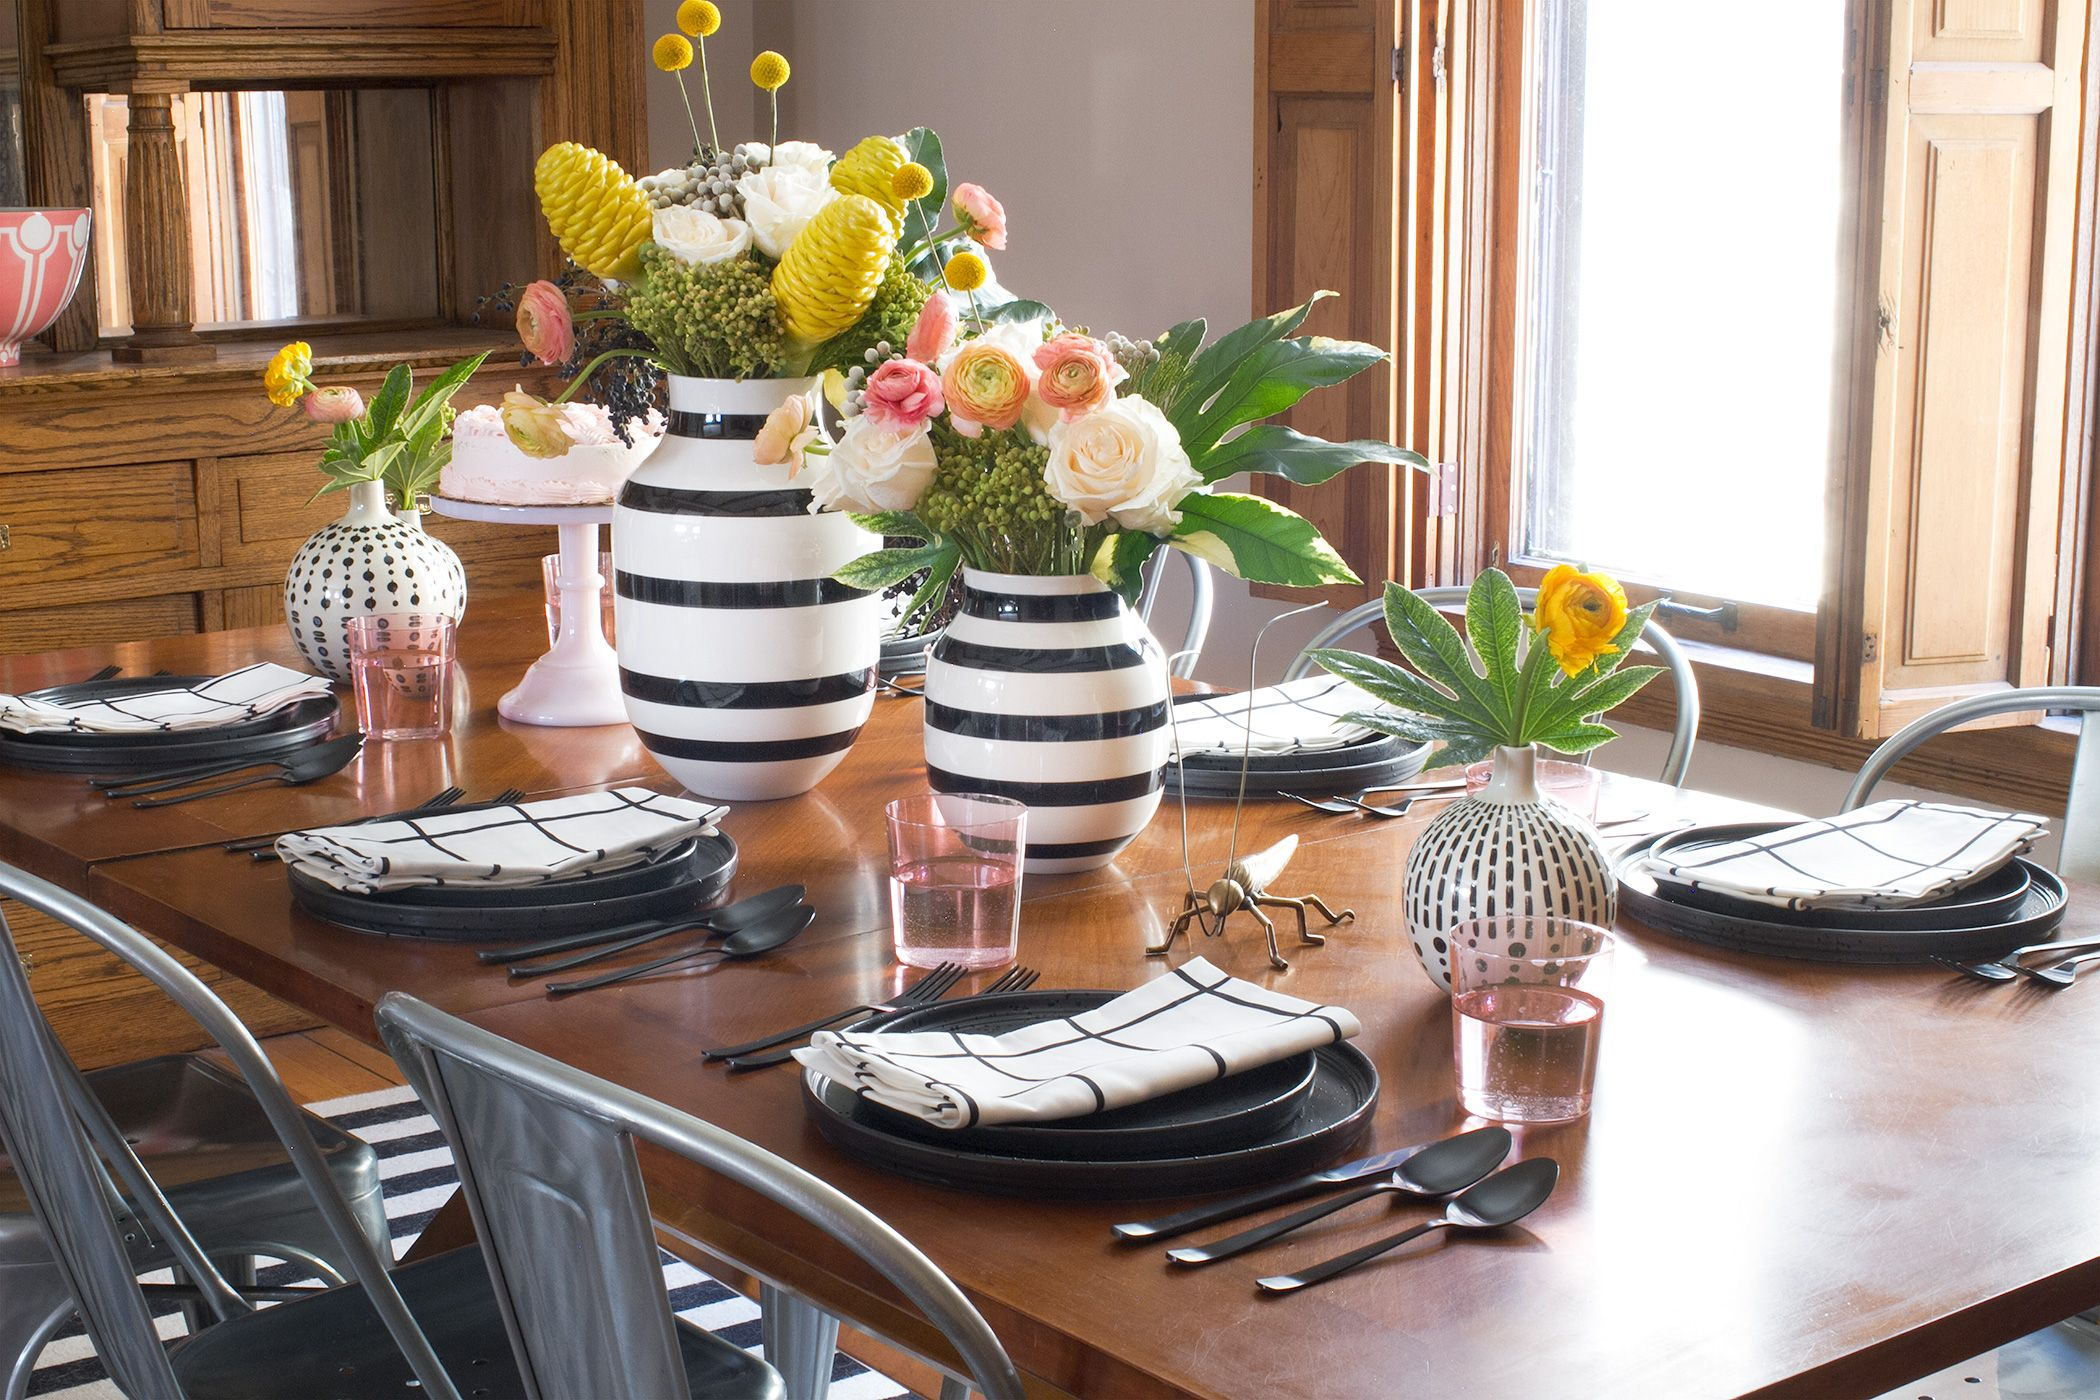 Setting The Table With Black & White